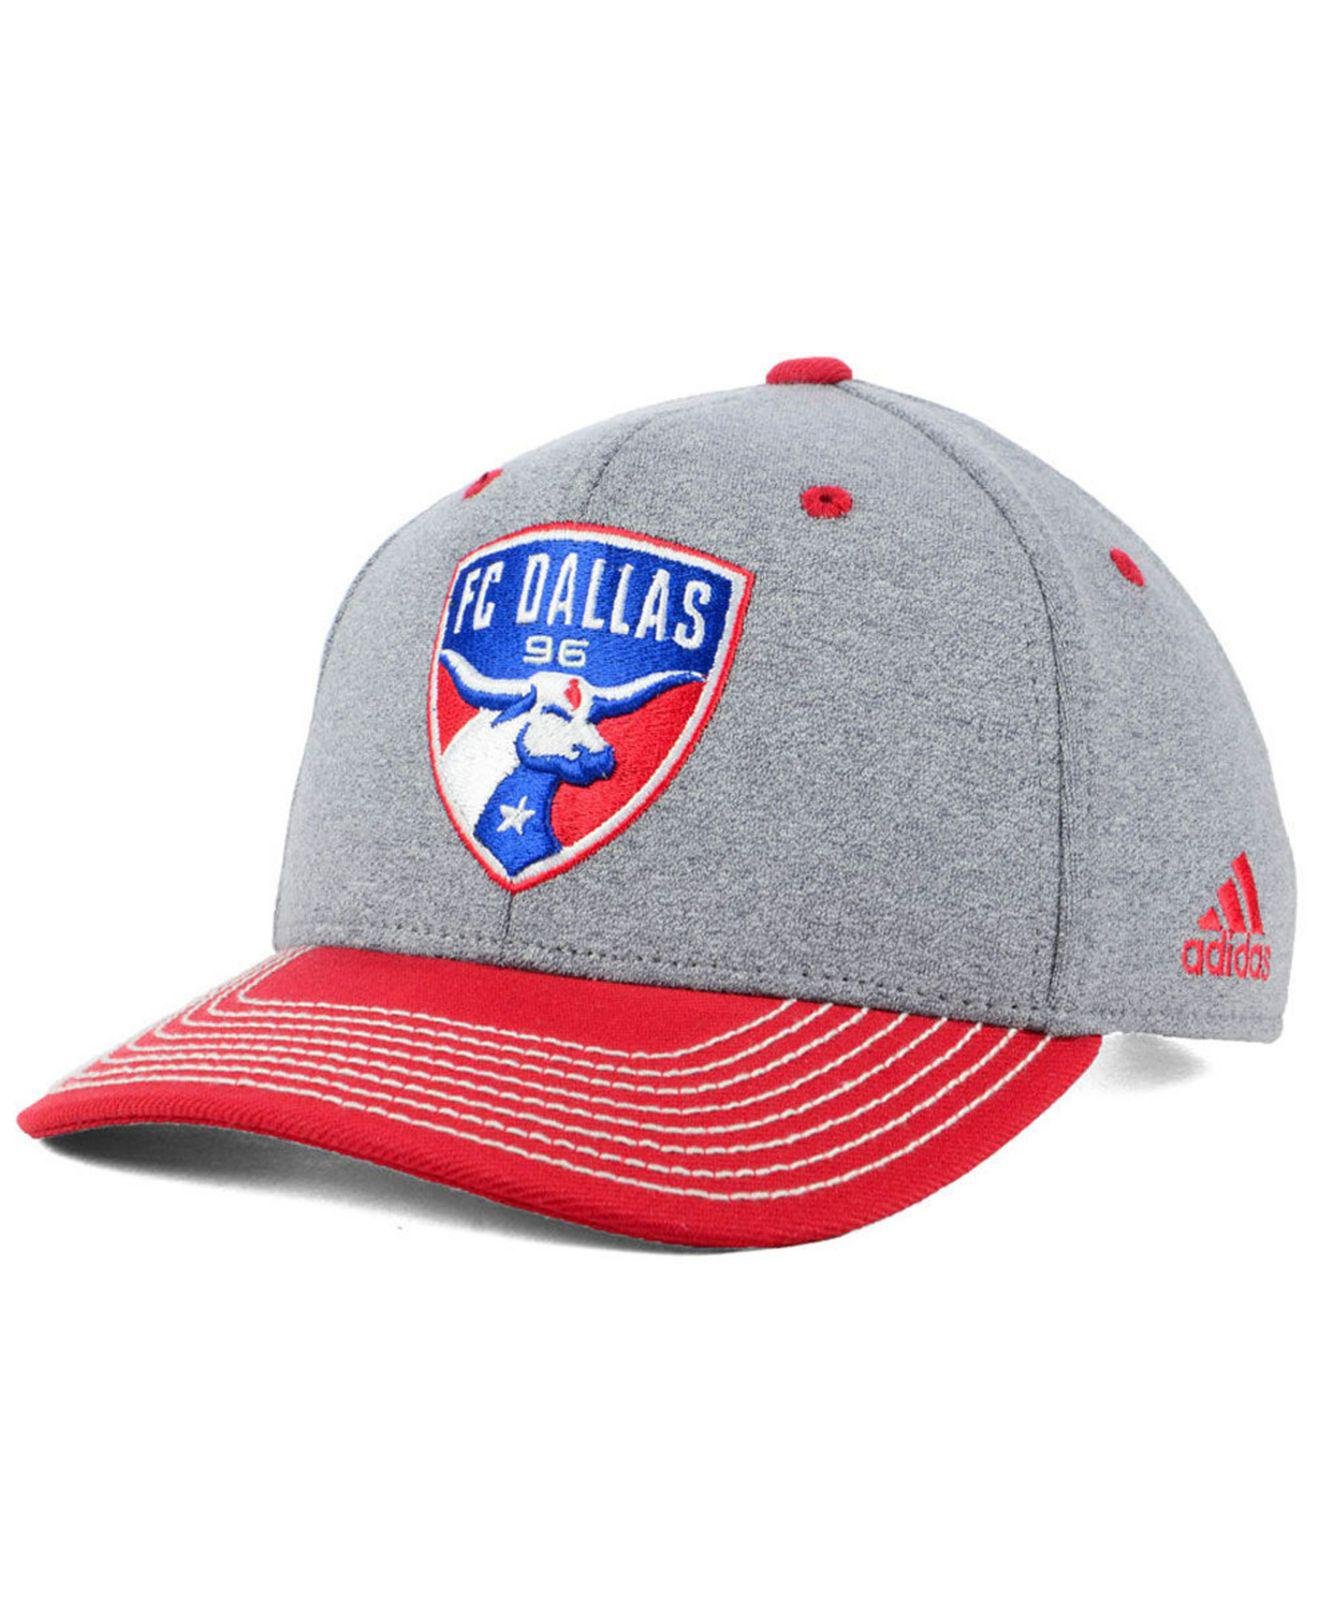 online retailer 8e4a4 22f0a Lyst - adidas Fc Dallas Structure Adjustable Cap in Red for Men